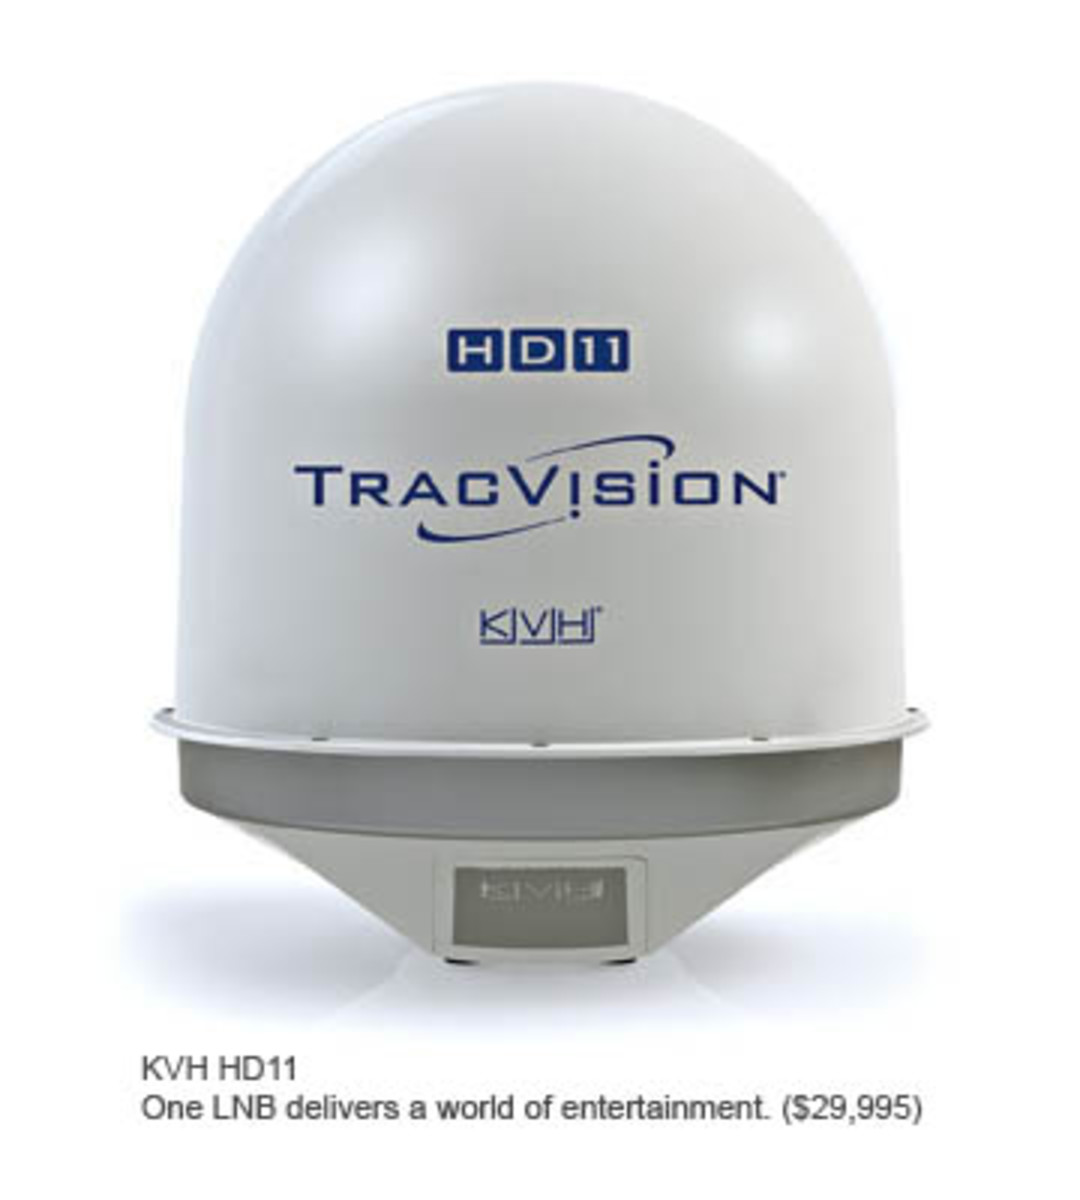 KVH HD11 TracVision Satellite TV System